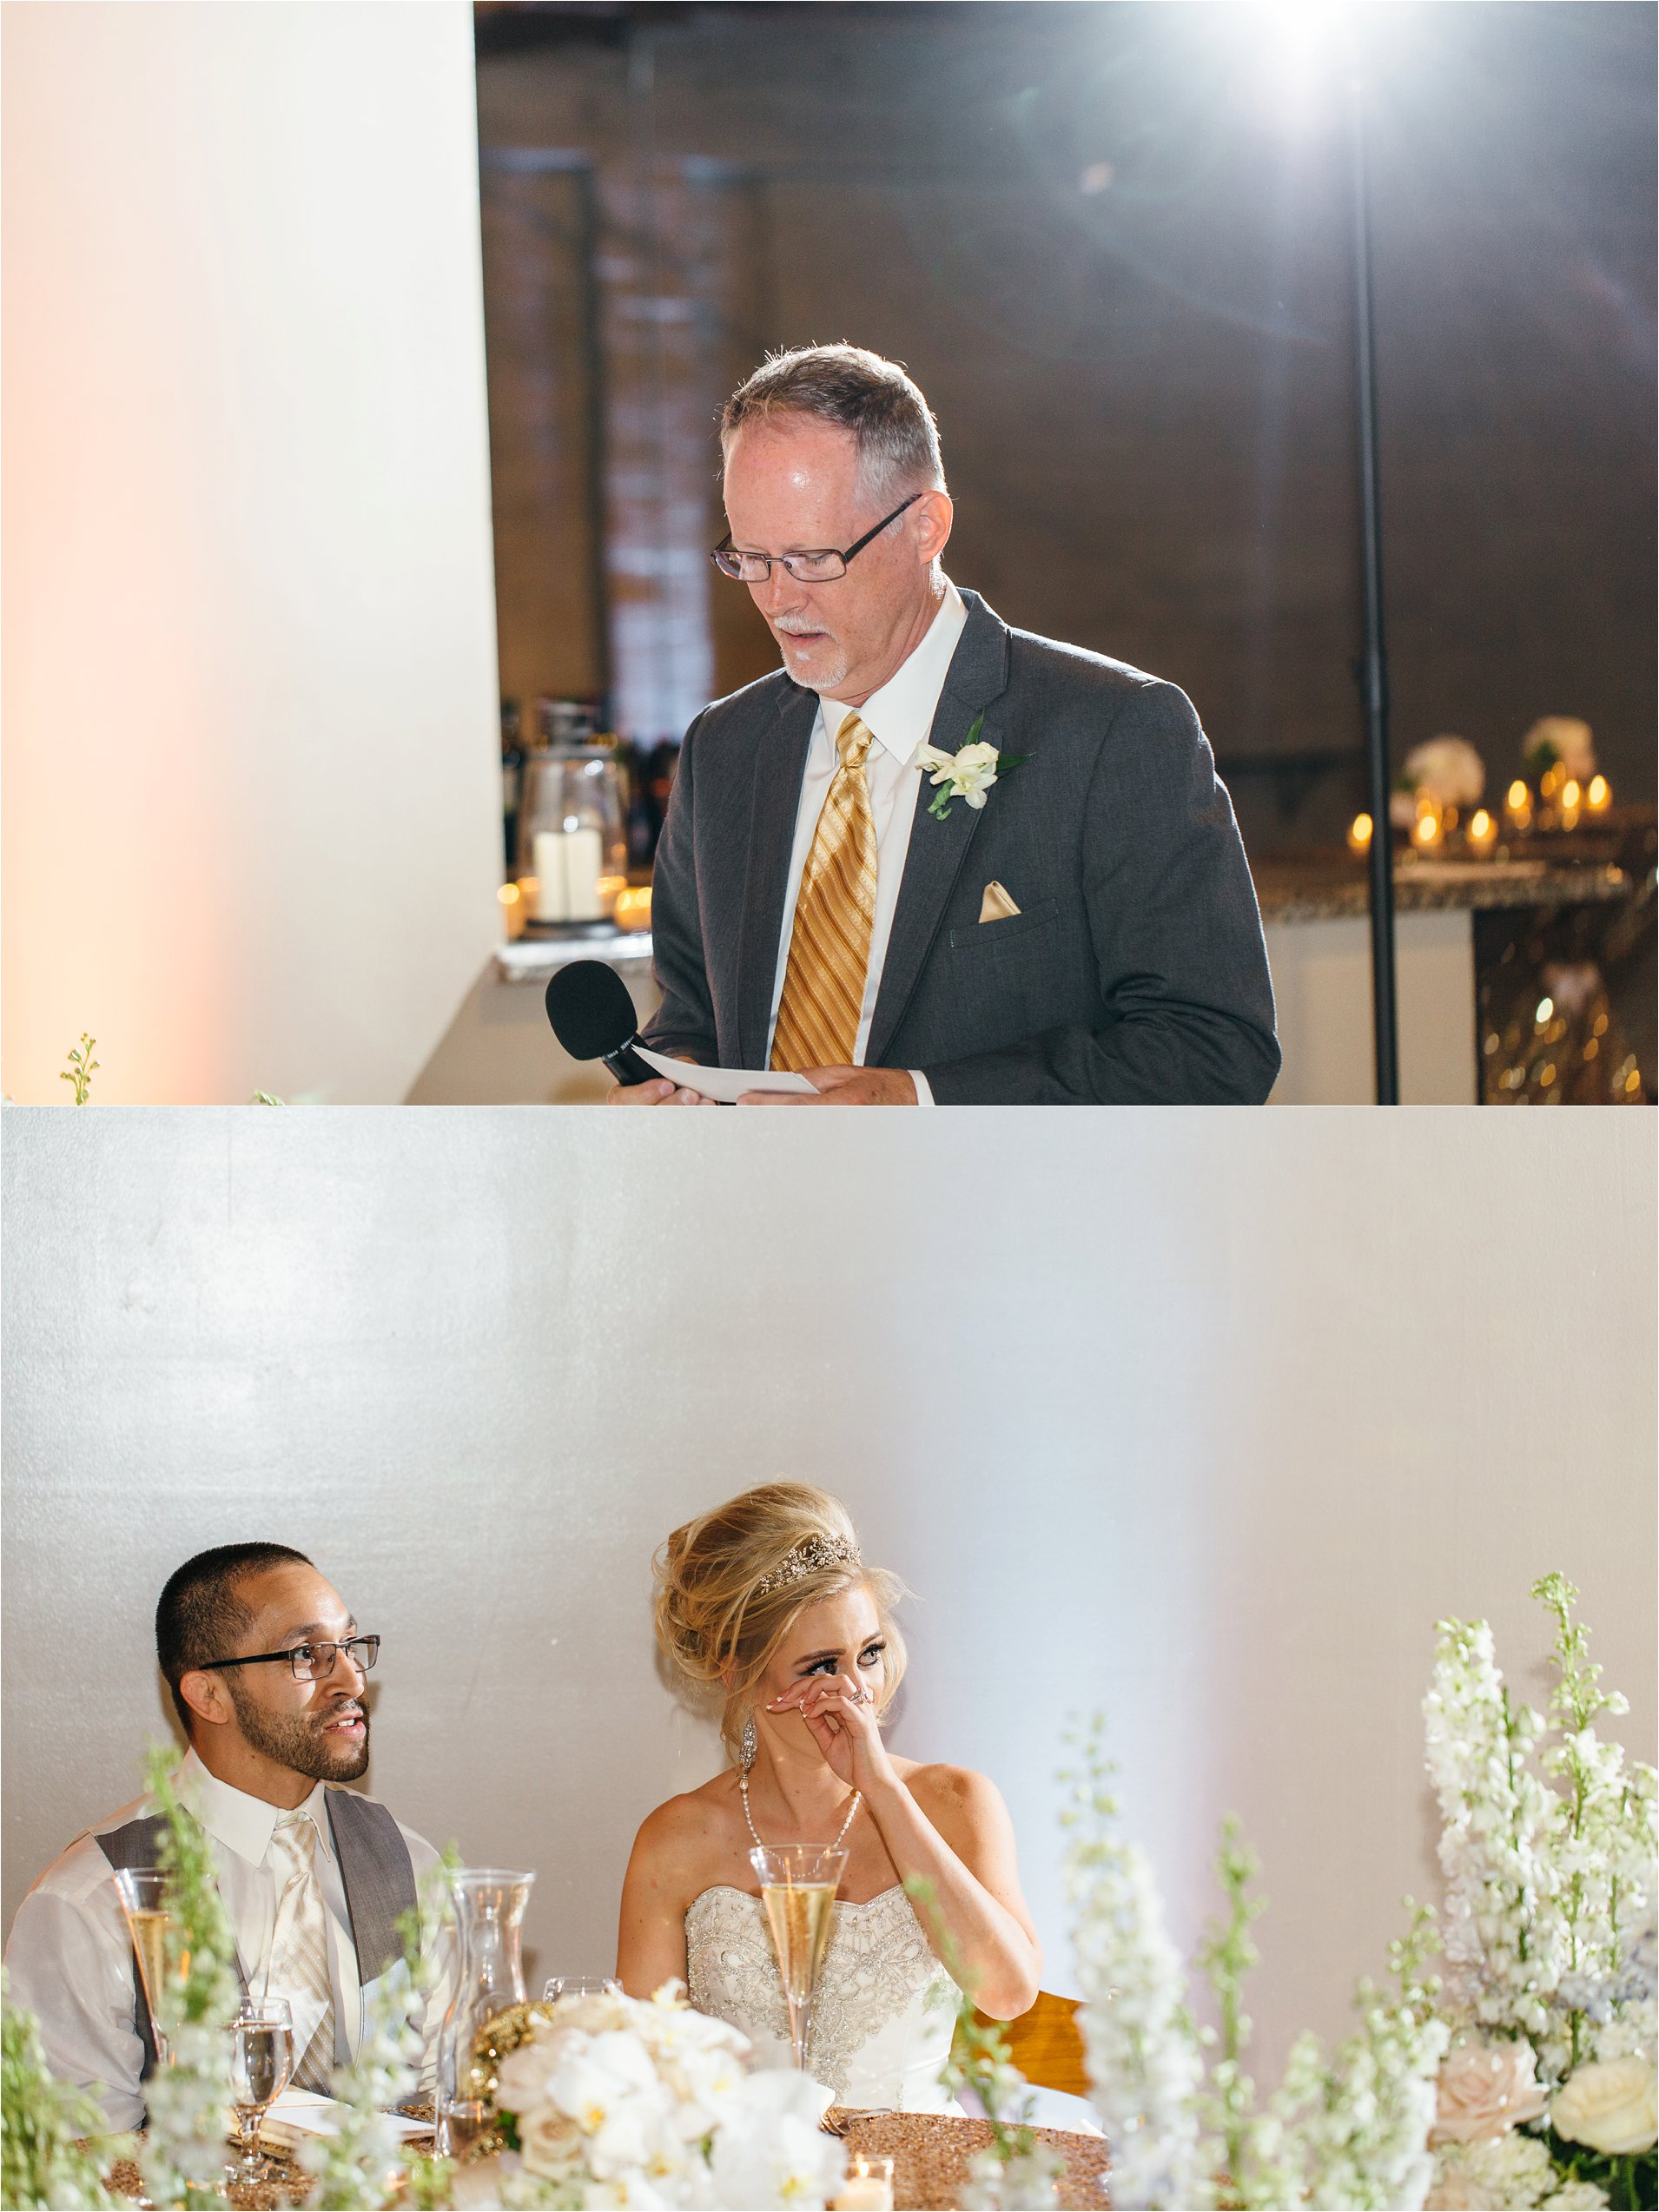 Dad's Wedding Speech